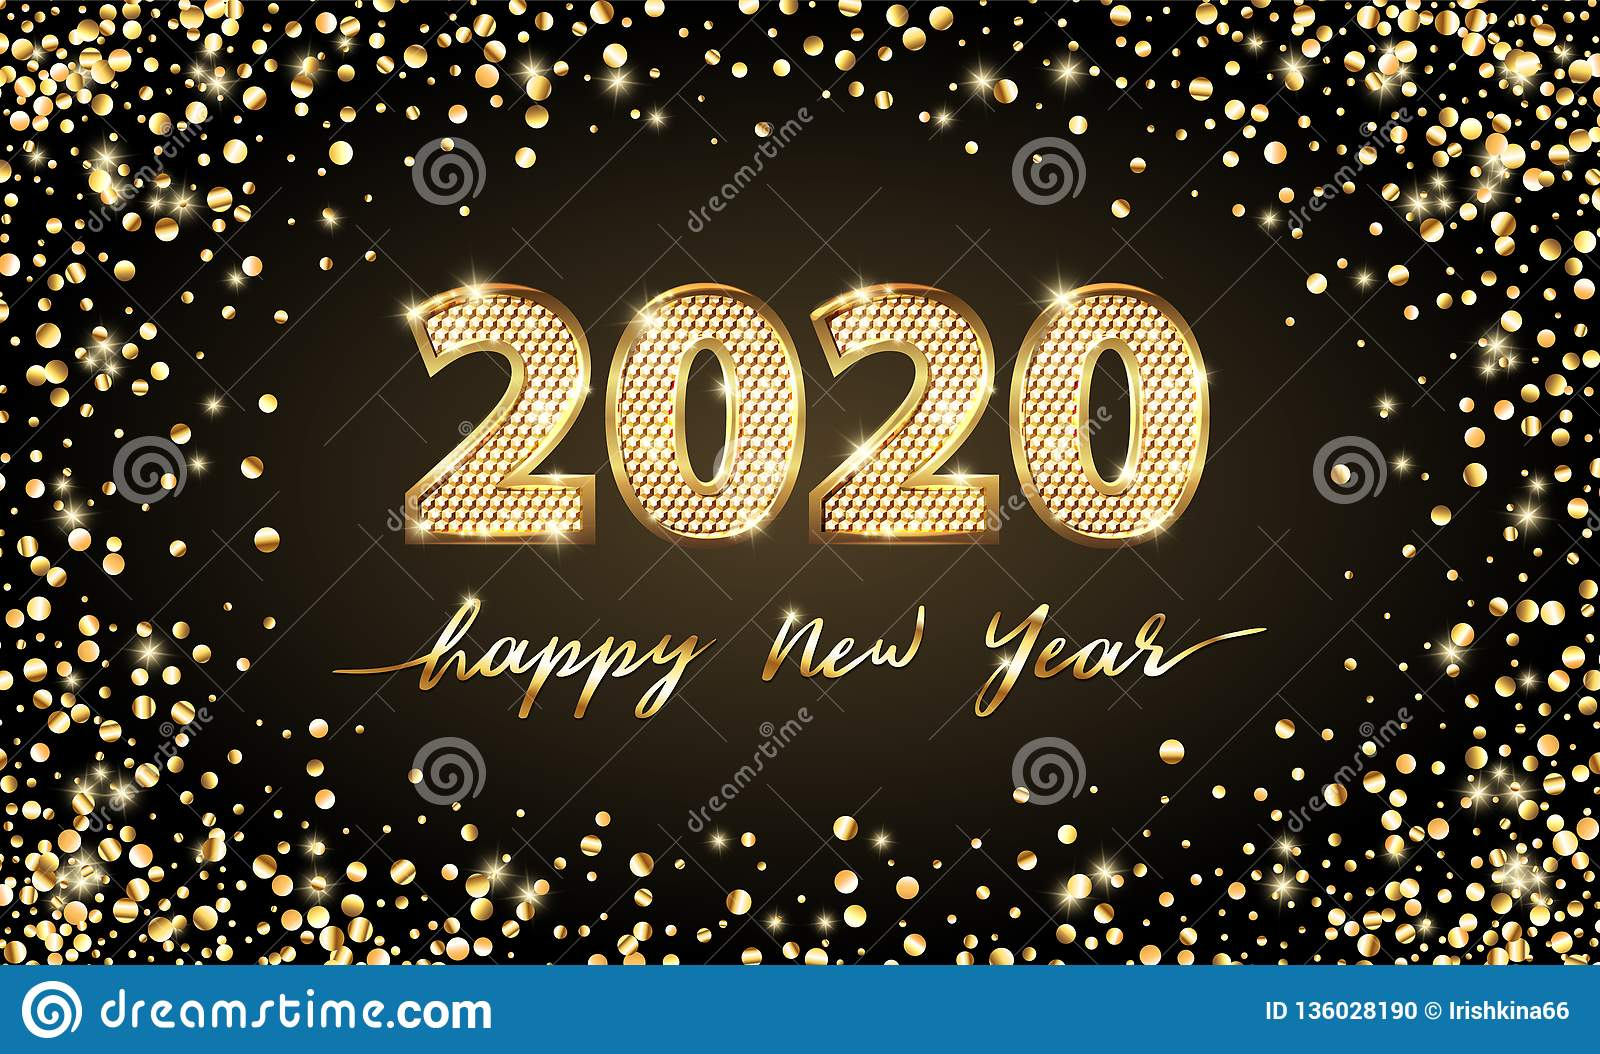 Golden Vector luxury text 2020 Happy new year. Gold Festive Numbers Design. Gold glitter confetti. Banner 2020 Digits